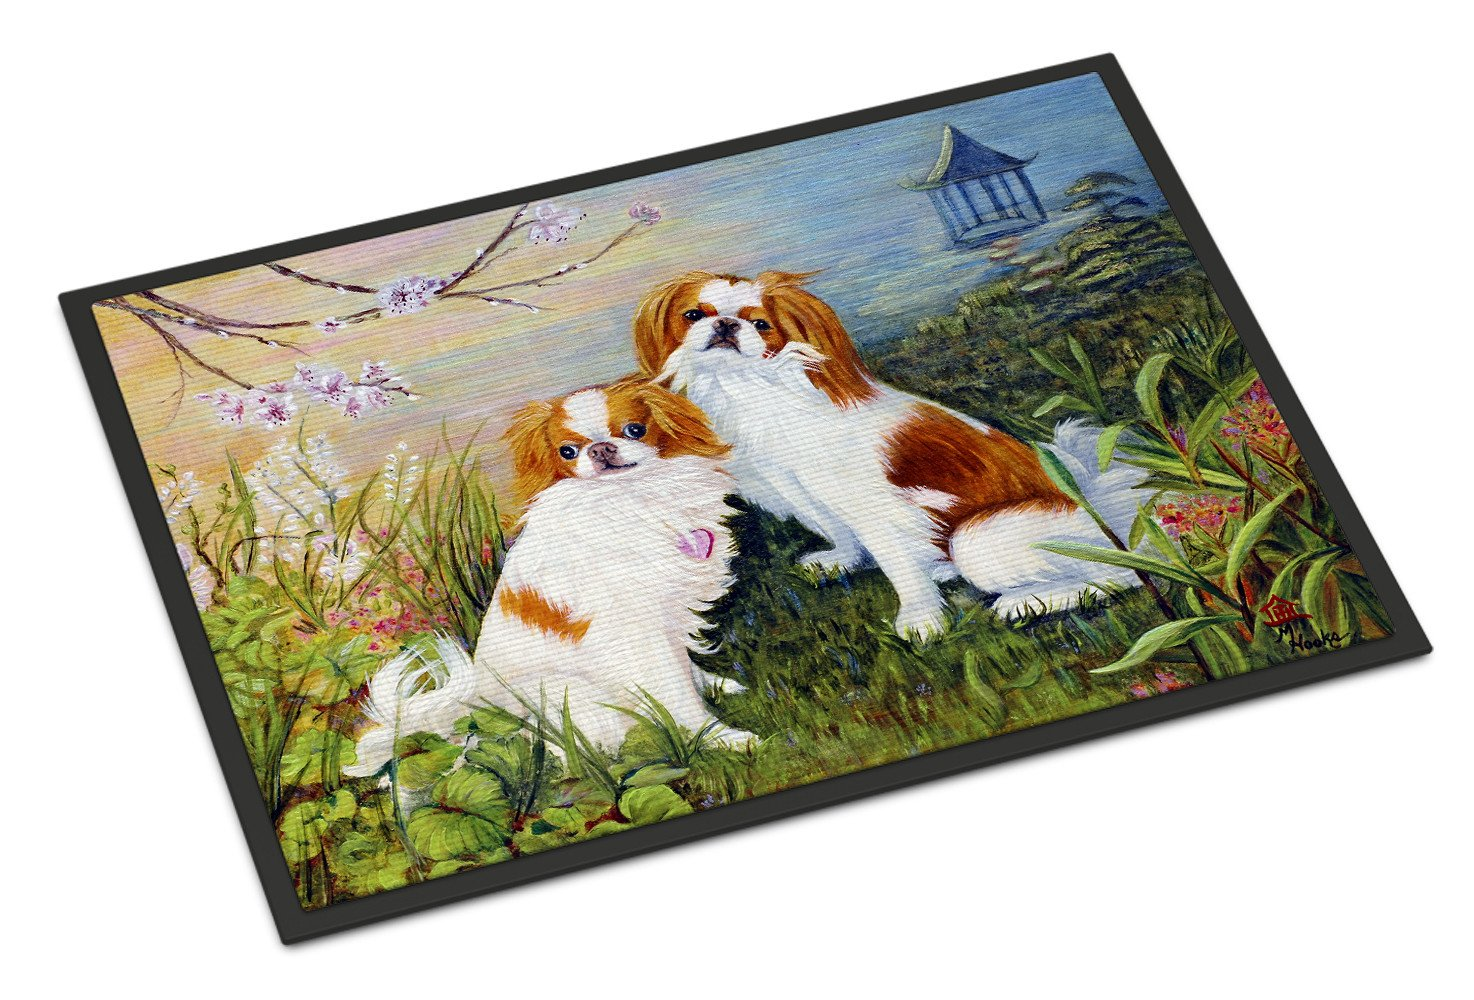 Japanese Chin Wasabi and Ginger Indoor or Outdoor Mat 18x27 MH1061MAT by Caroline's Treasures